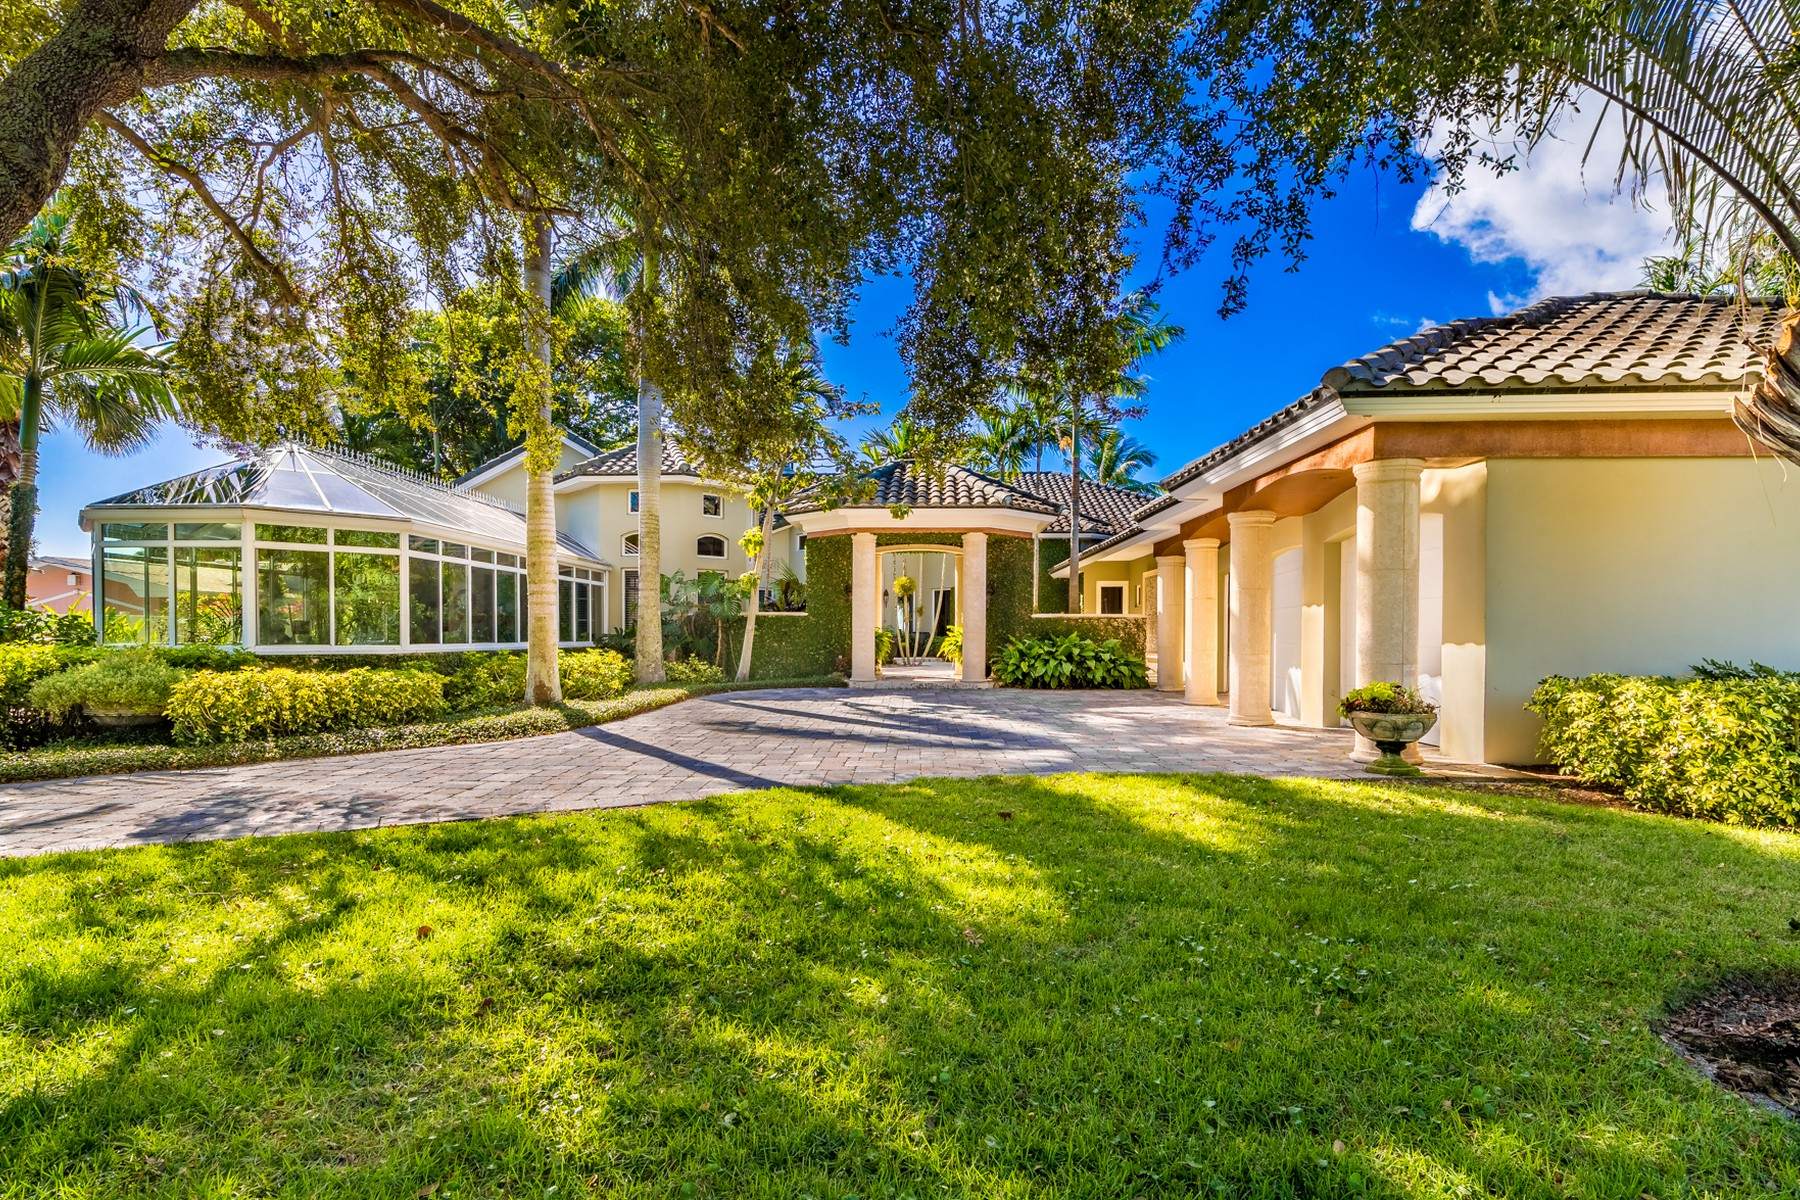 Single Family Home for Sale at Spectacular Riverfront Home in Sunset Shores 200 Riverside Drive Melbourne, Florida 32951 United States